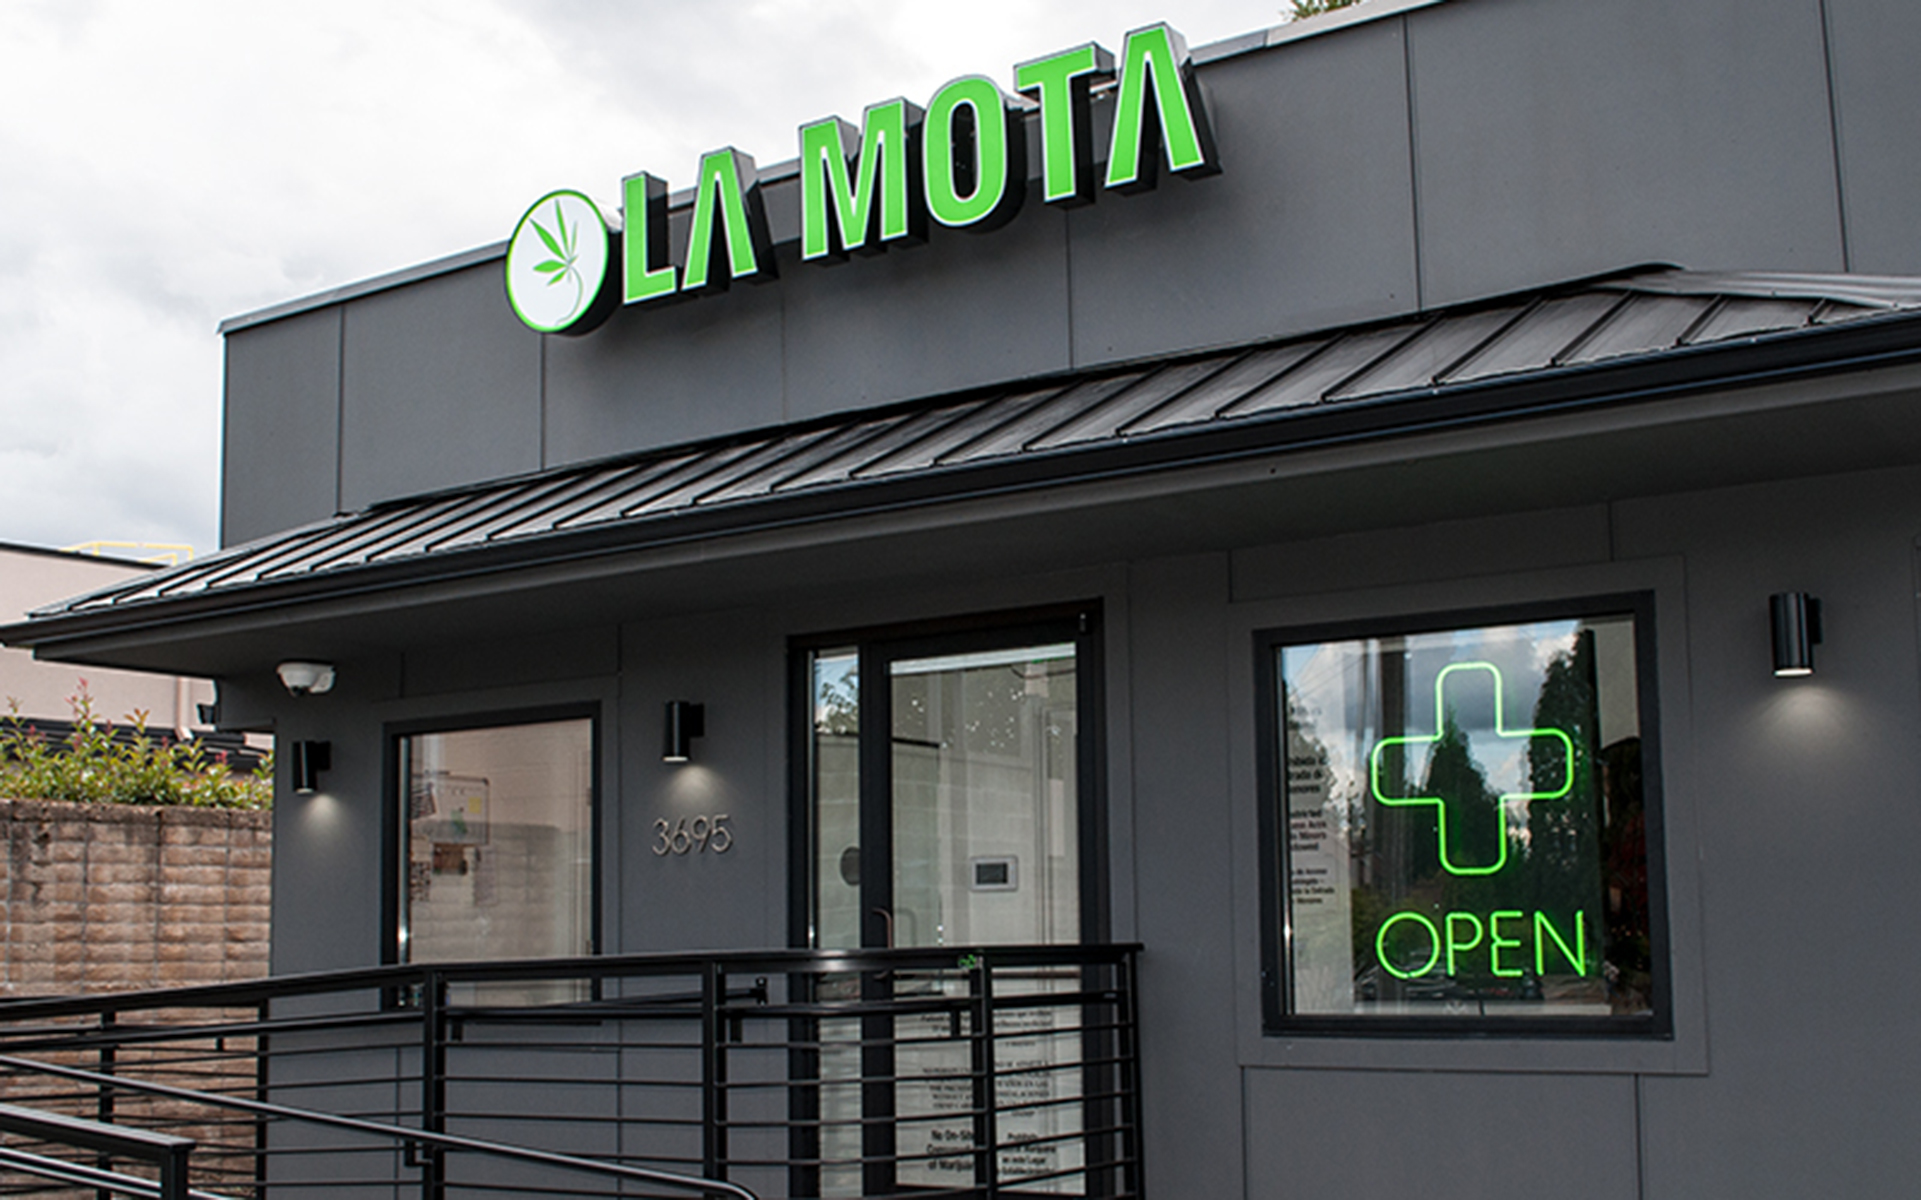 La Mota Beaverton Oregon Marijuana Dispensary — Leafly List Spring 2017